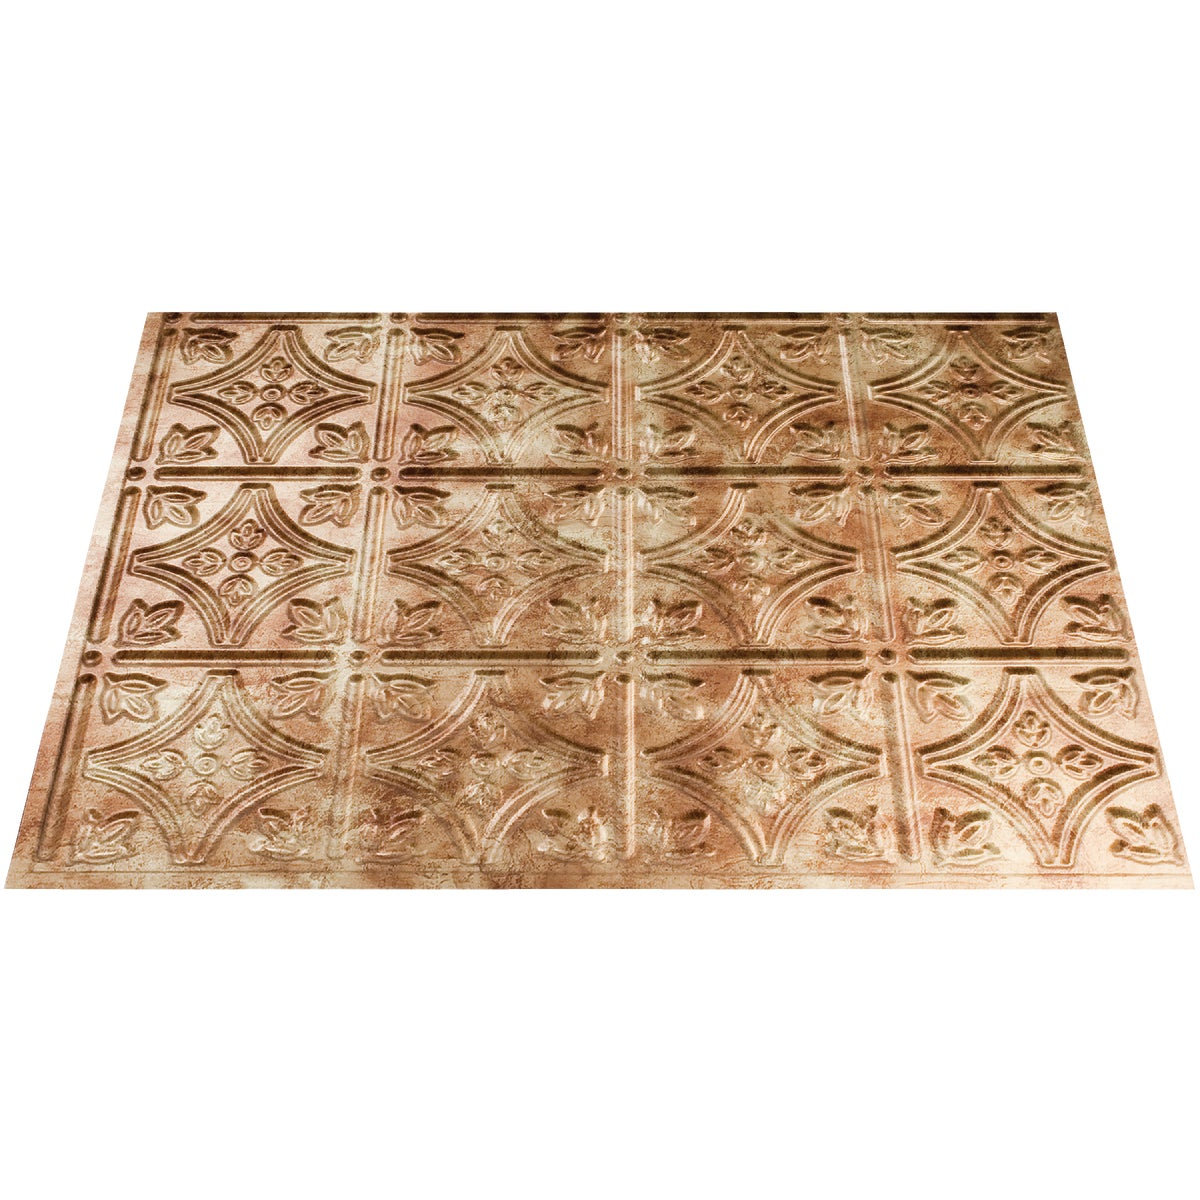 BERM BRONZE TRAD 1 PANEL